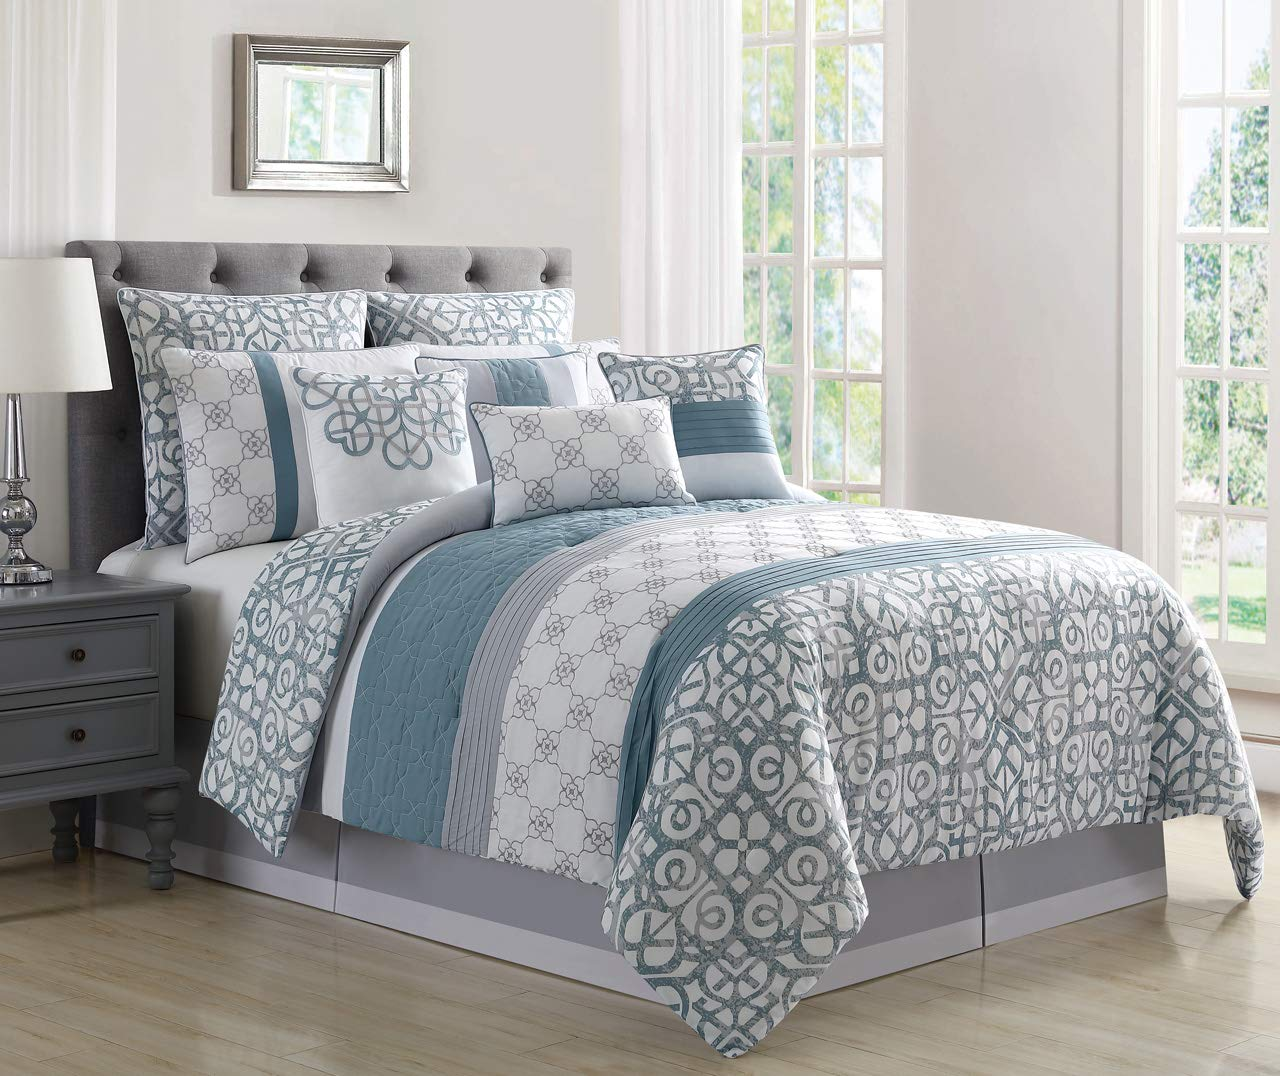 10 Piece Tatiana Blue/Gray/White Comforter Set King